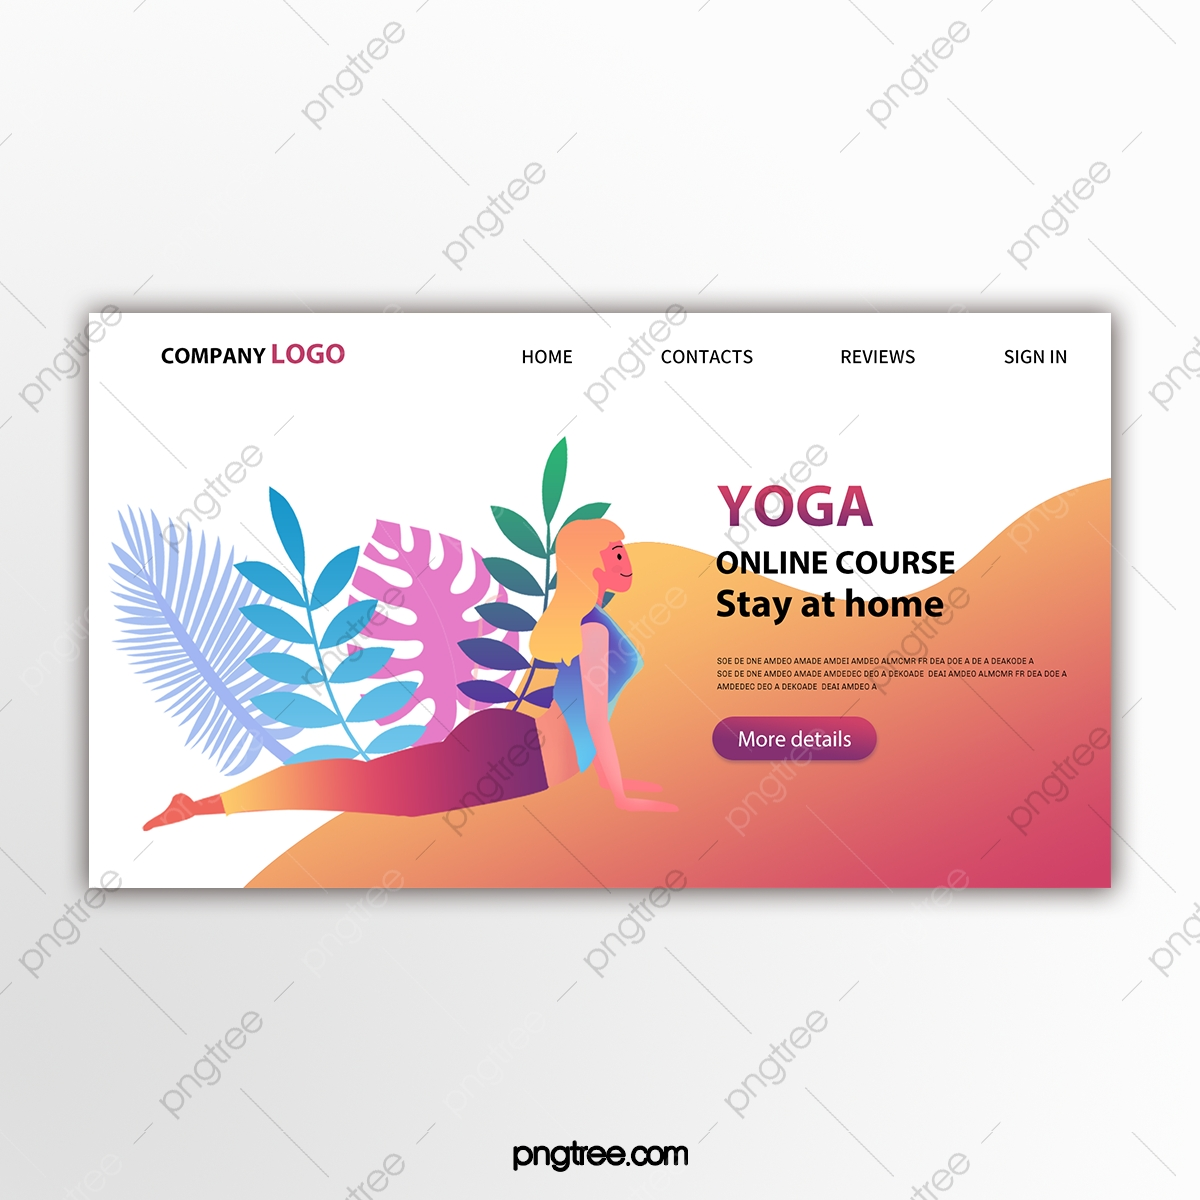 Minimalist Yoga Online Tutorial Web Design Template For Free Download On Pngtree